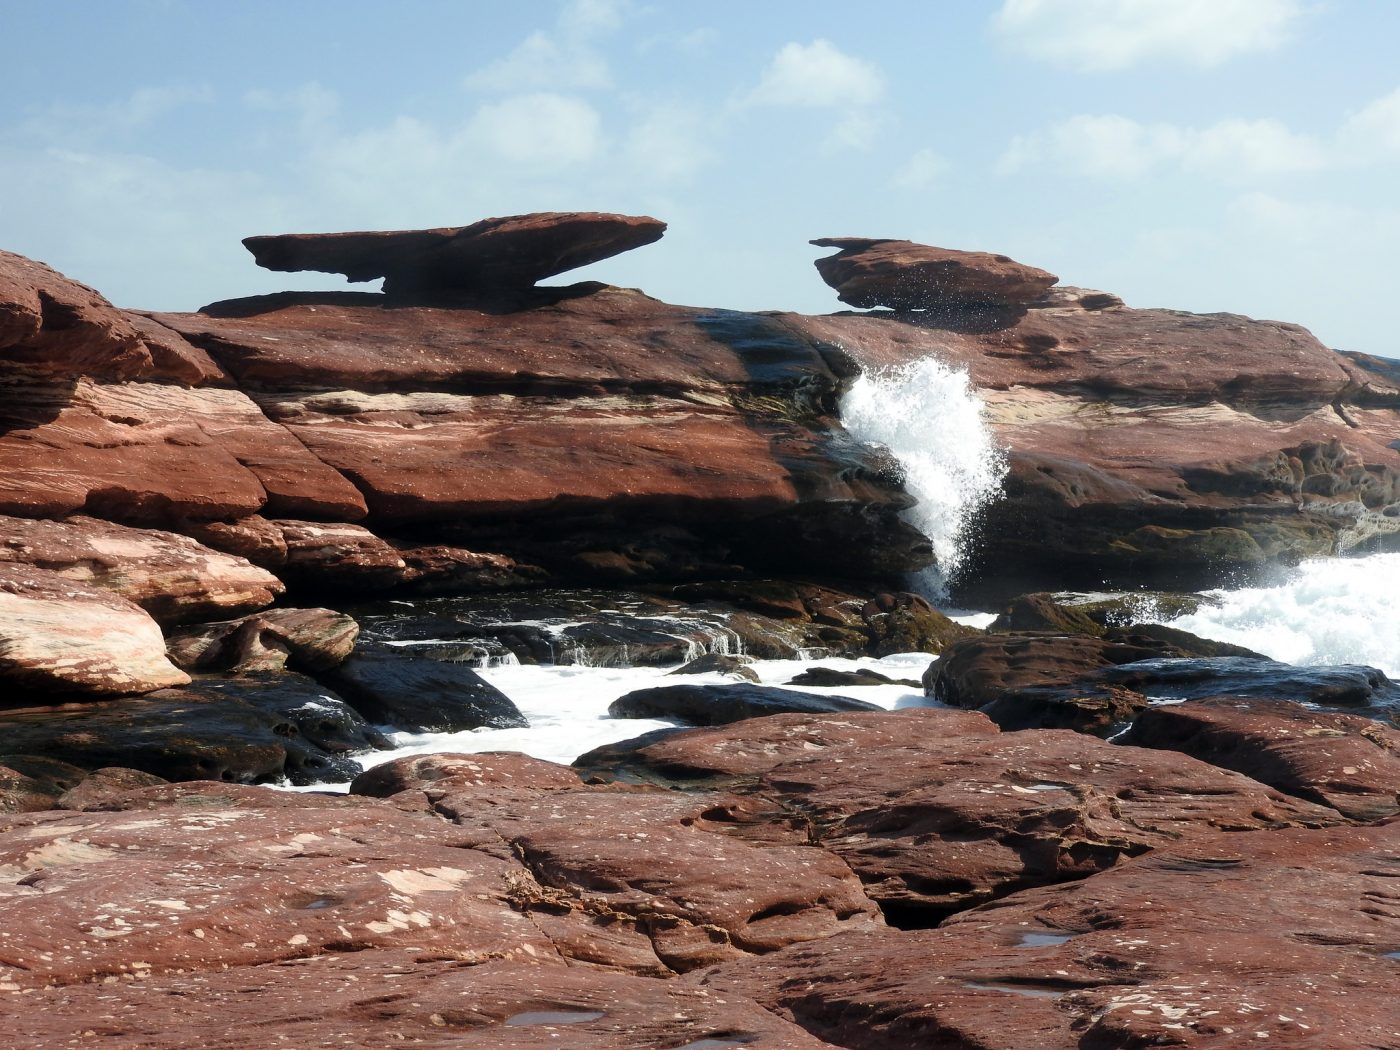 What to do when visiting Kalbarri National Park